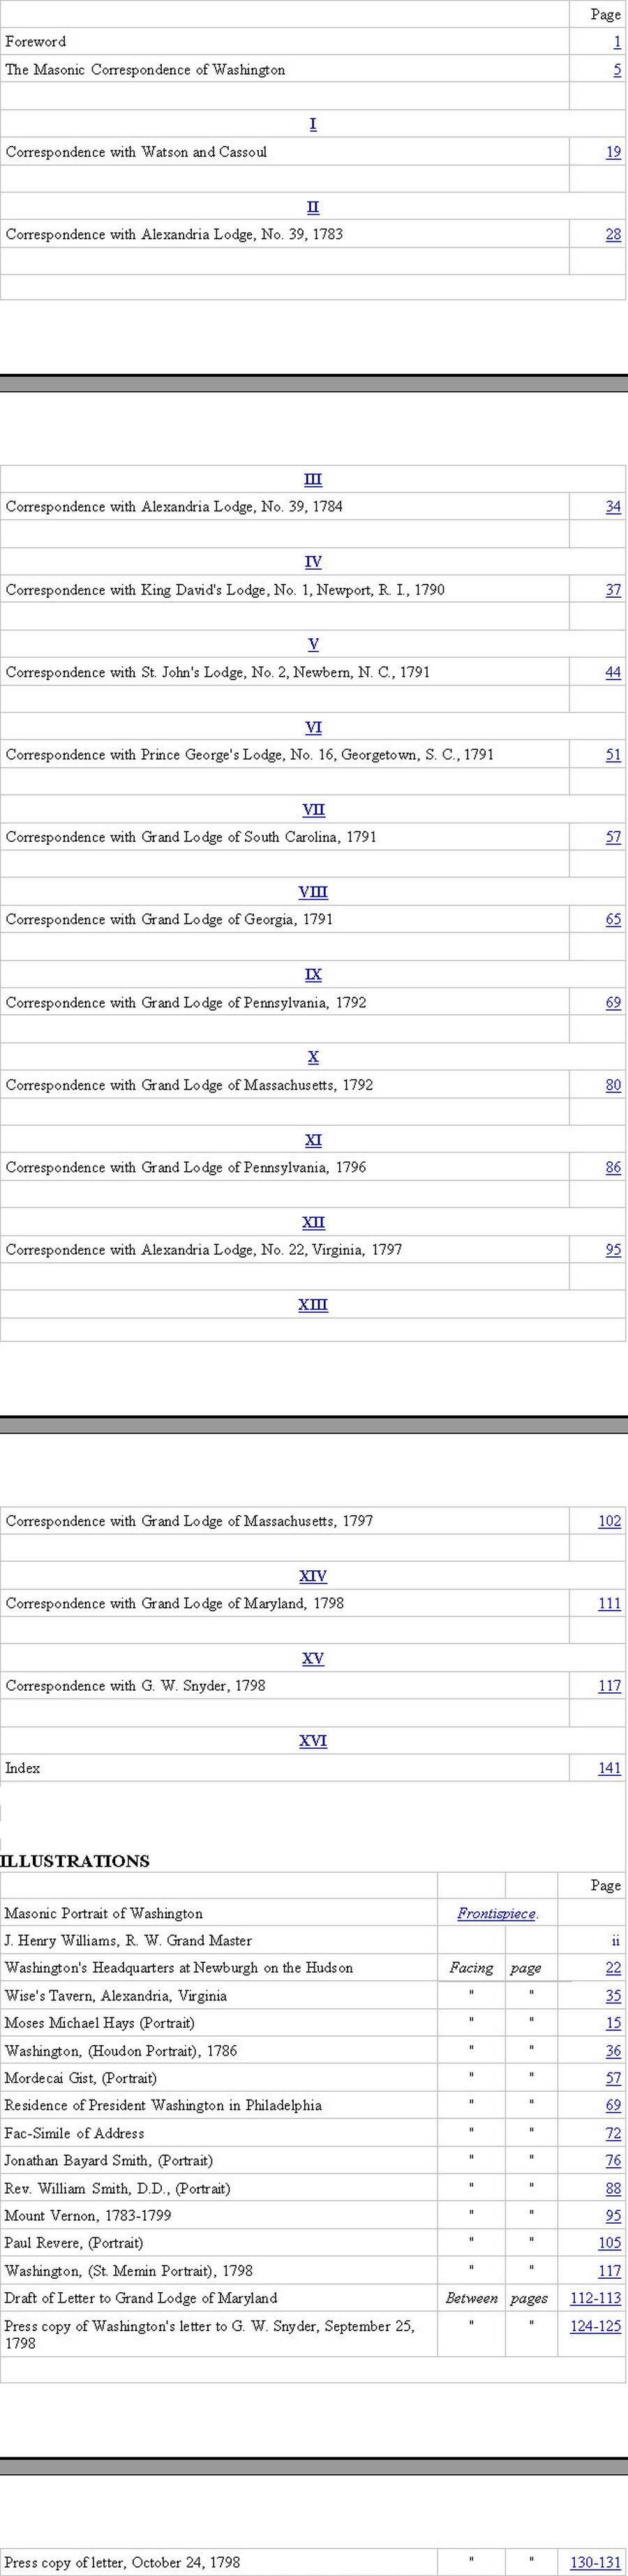 2015-01-03_134114 Table of Contents x900w